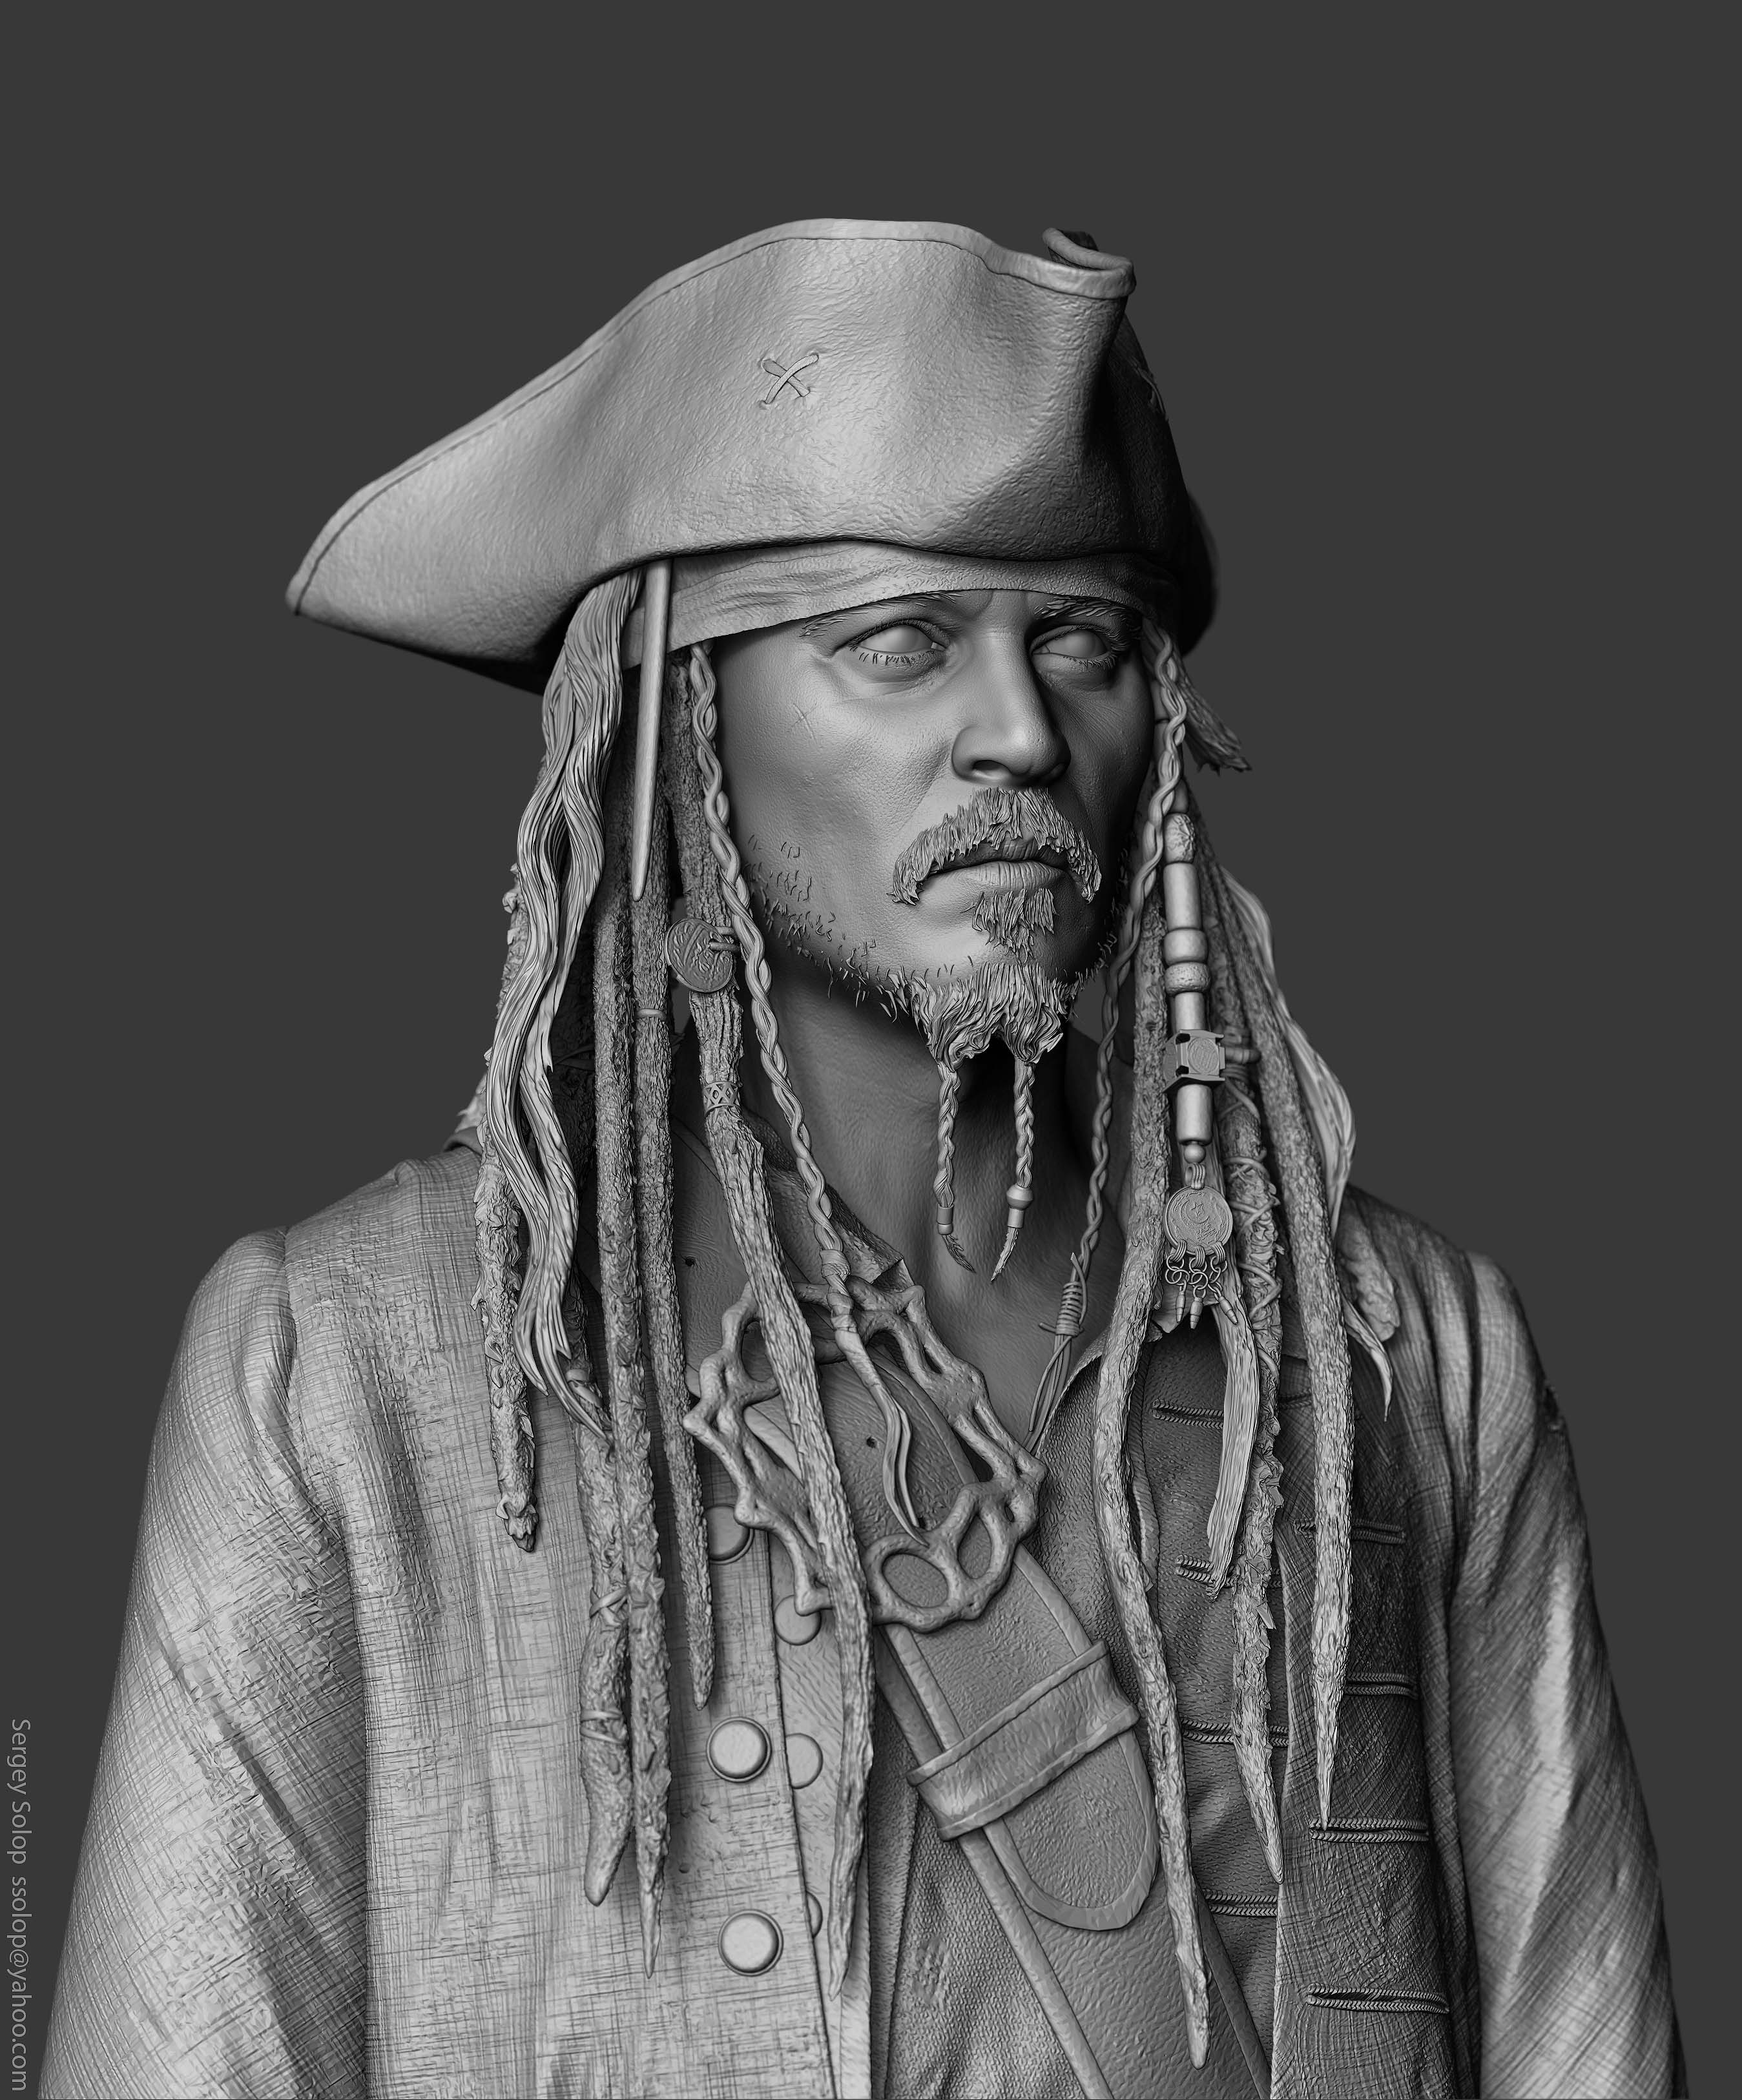 sergey-solop-jack-sparrow-pirates-of-the-caribbean-wip-17.jpg